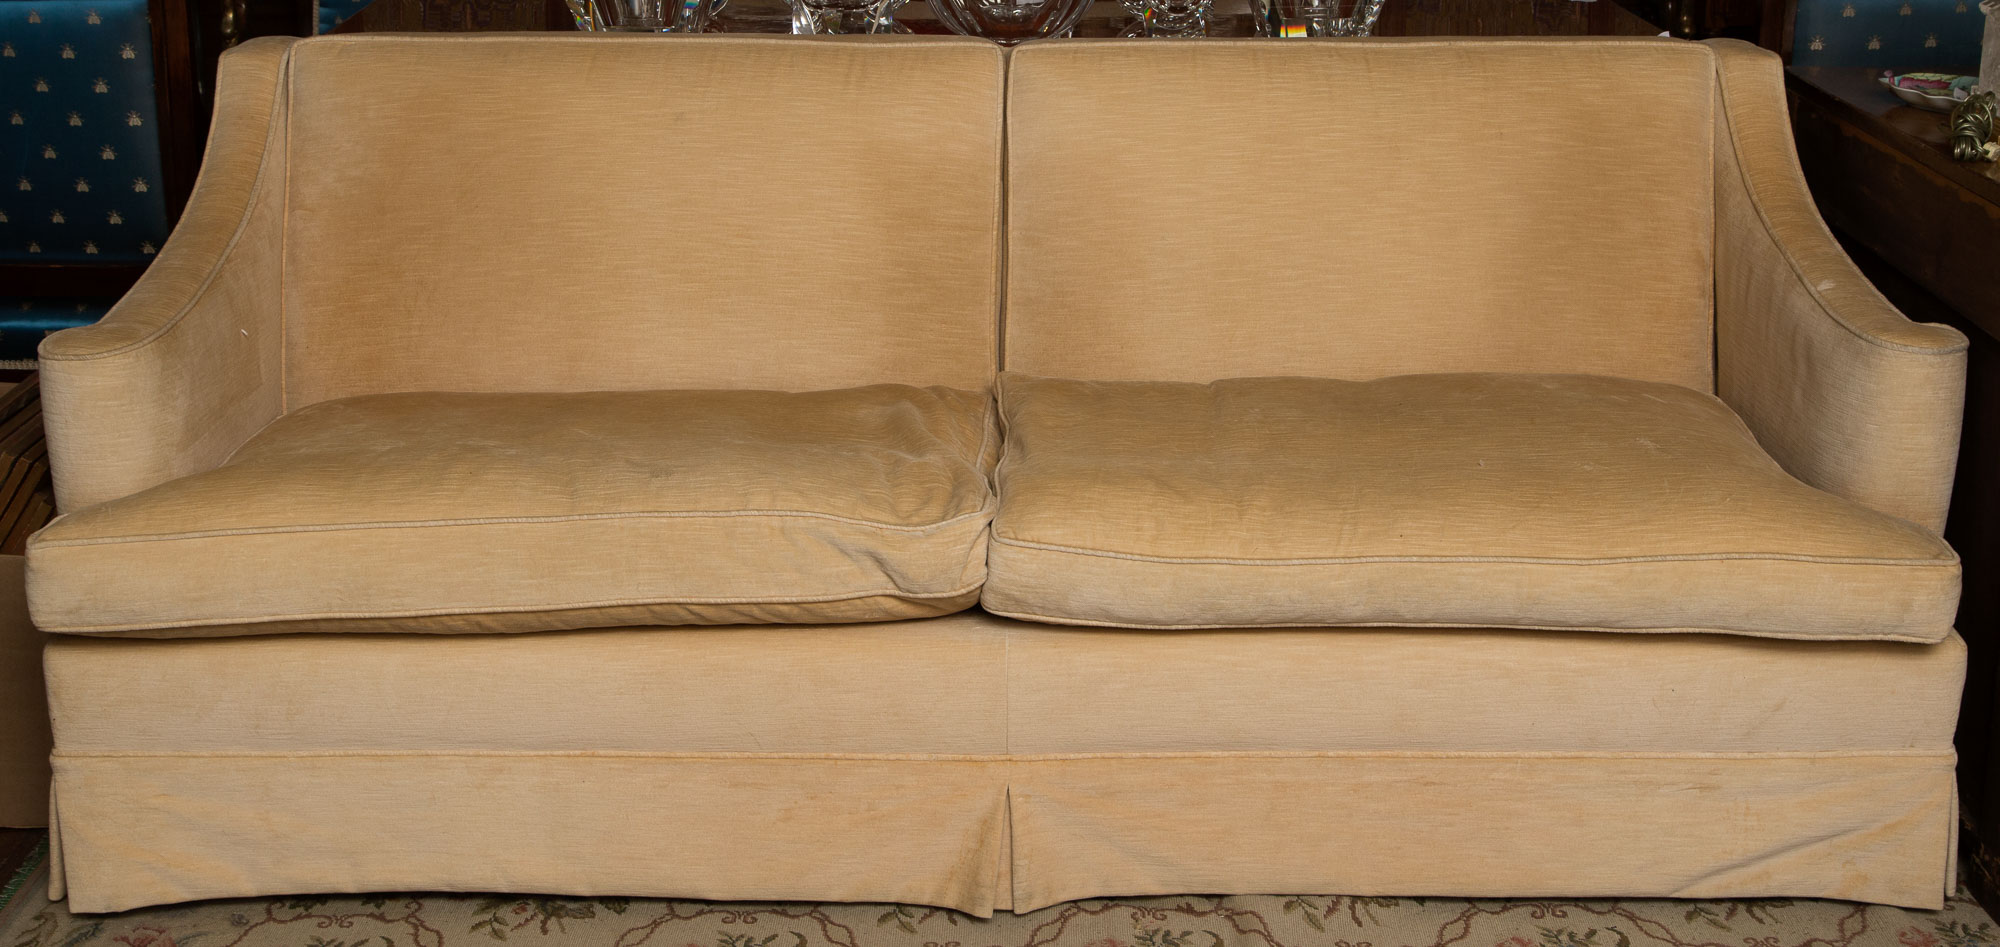 Lot image - Pair of Upholstered Sofas